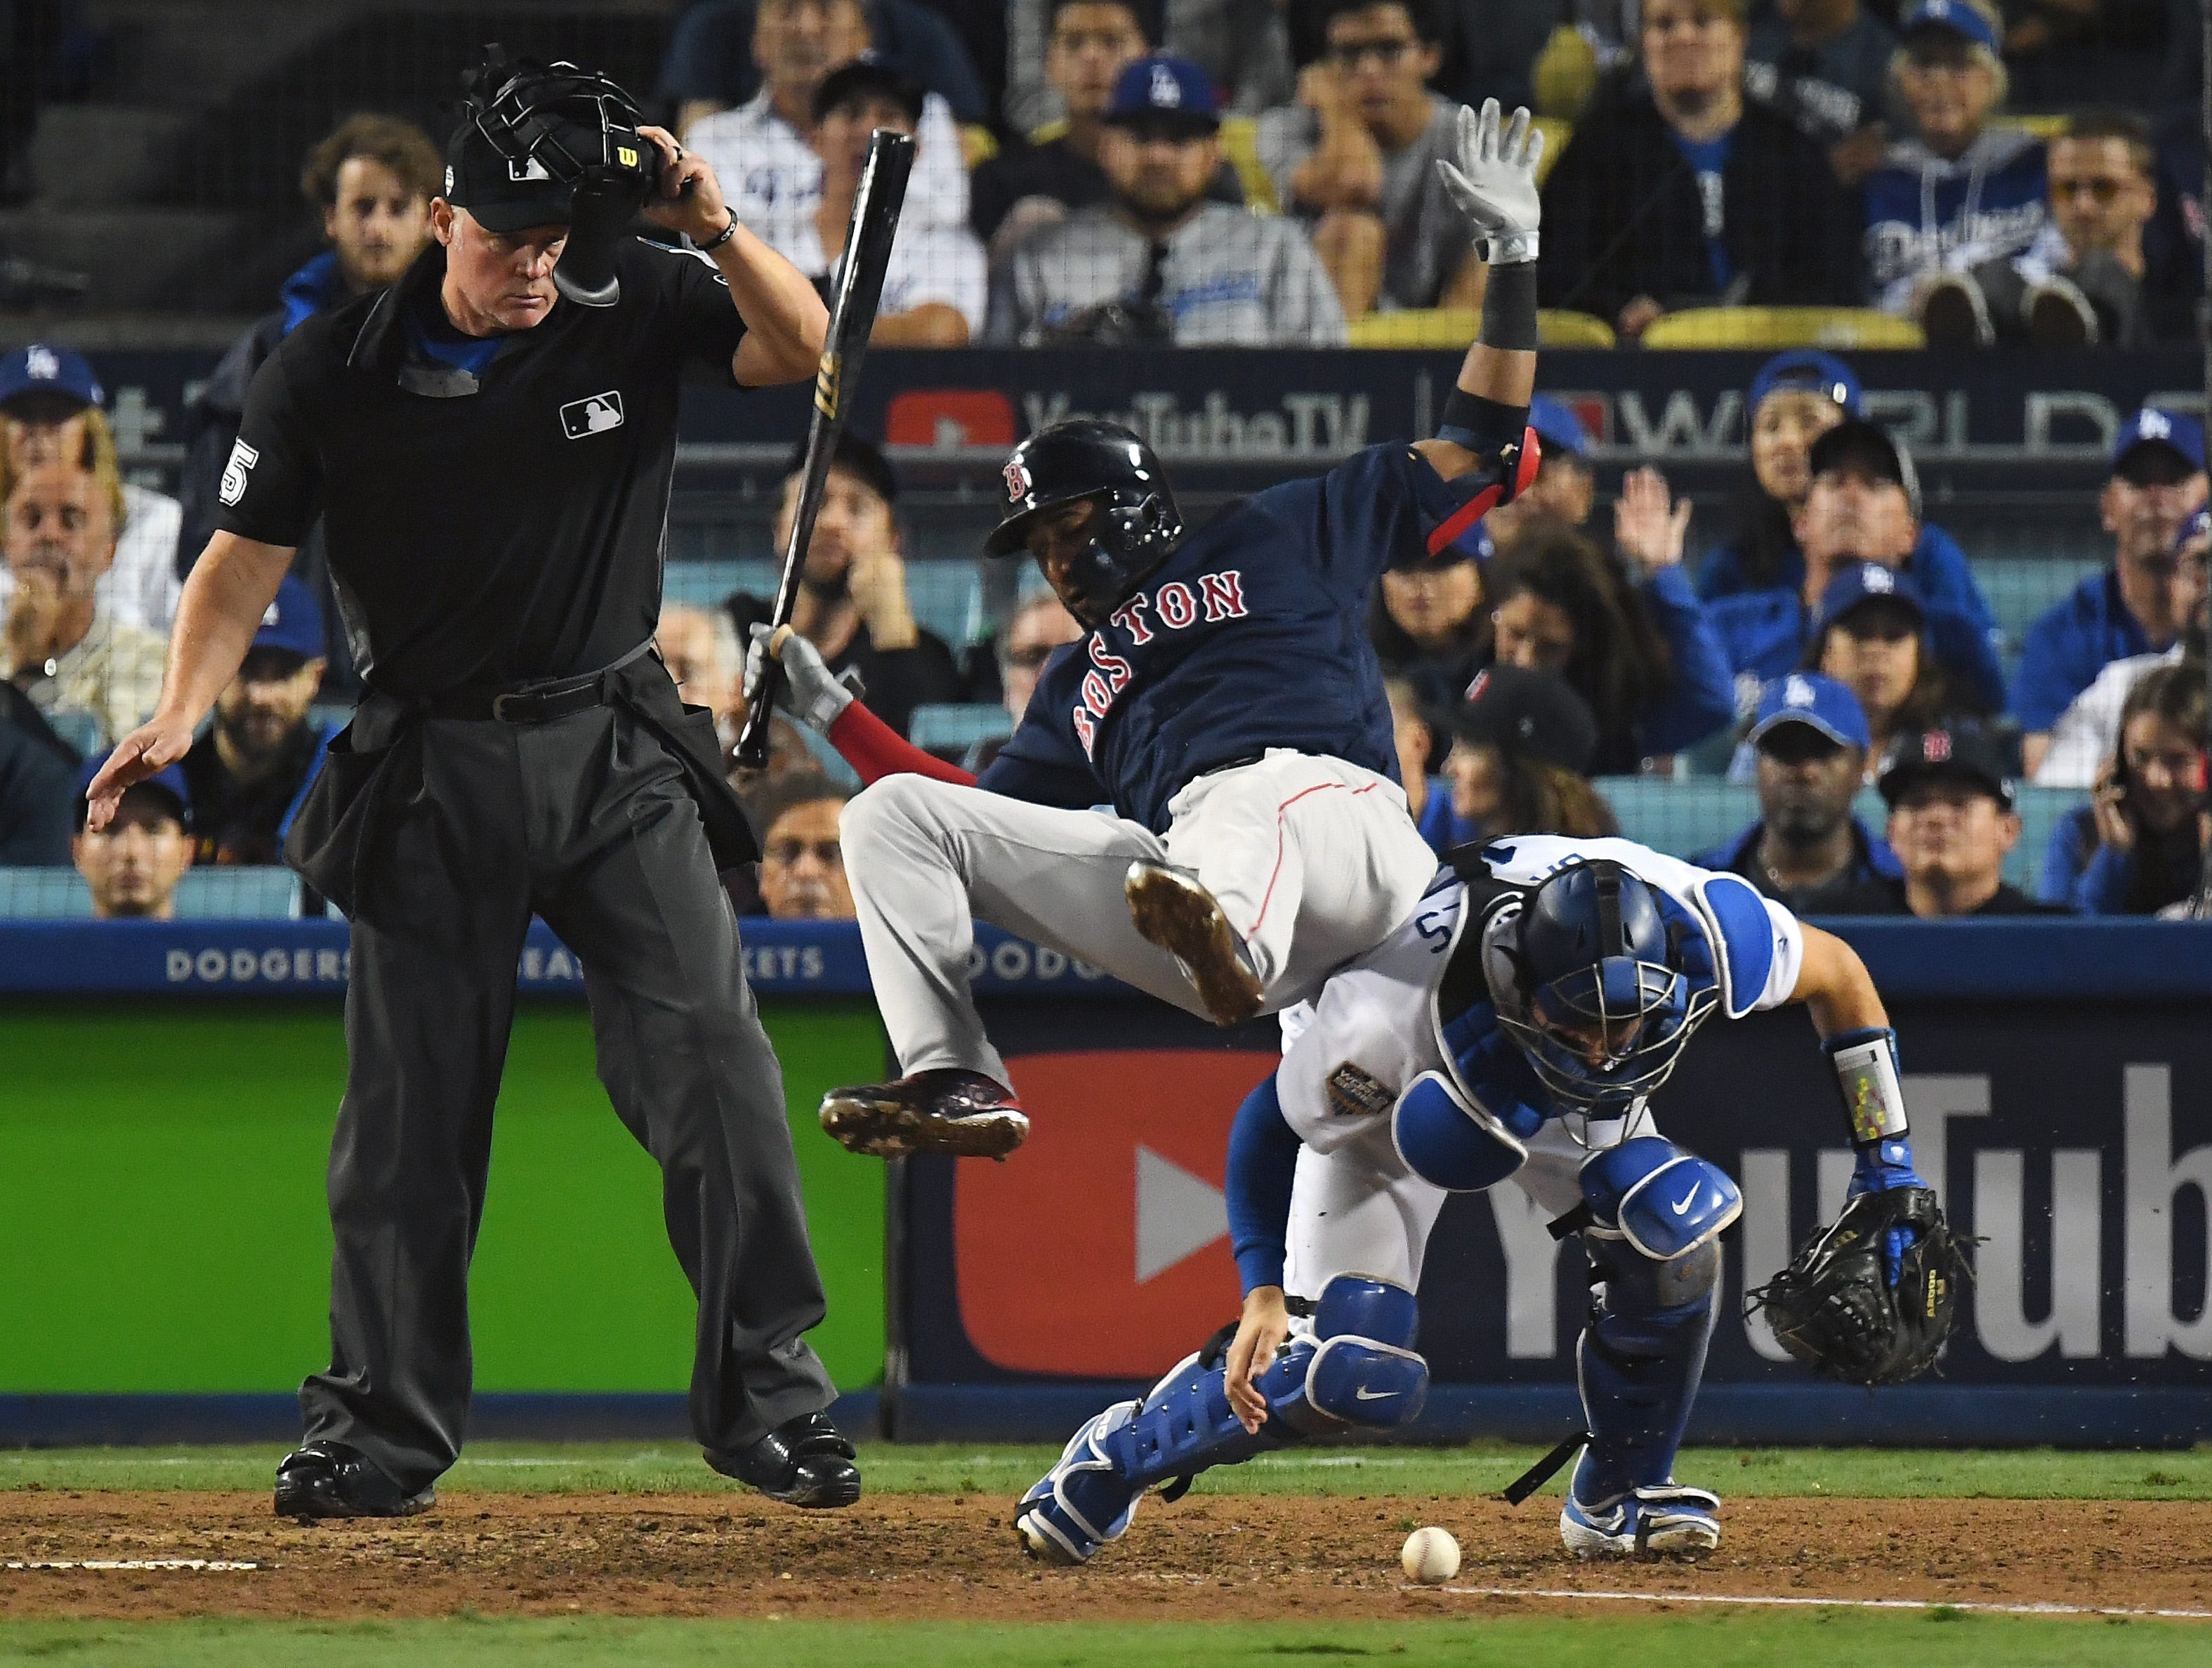 Game 3 at Dodger Stadium: Dodgers catcher Austin Barnes goes for a ball in the dirt as Eduardo Nunez tries to get out of the way in the 13th.